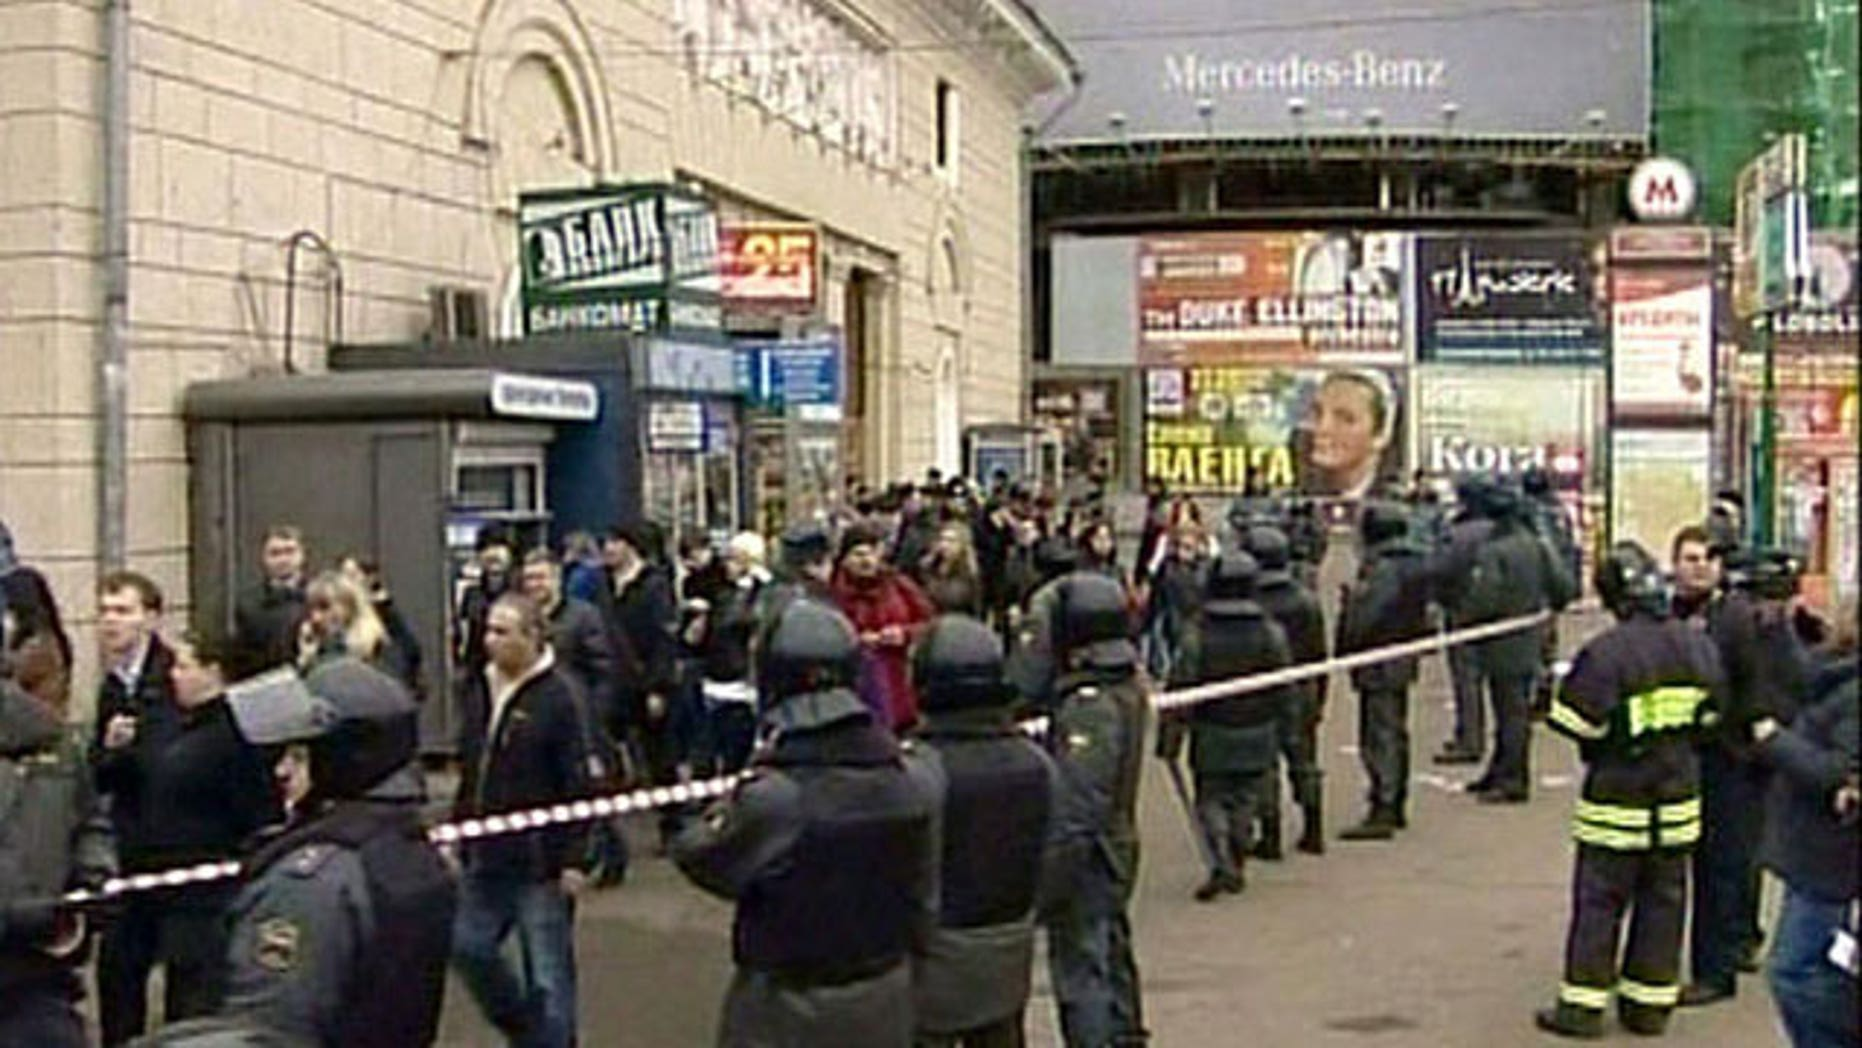 Police outside Park Kultury subway station after bomb blast, Moscow, Russia.